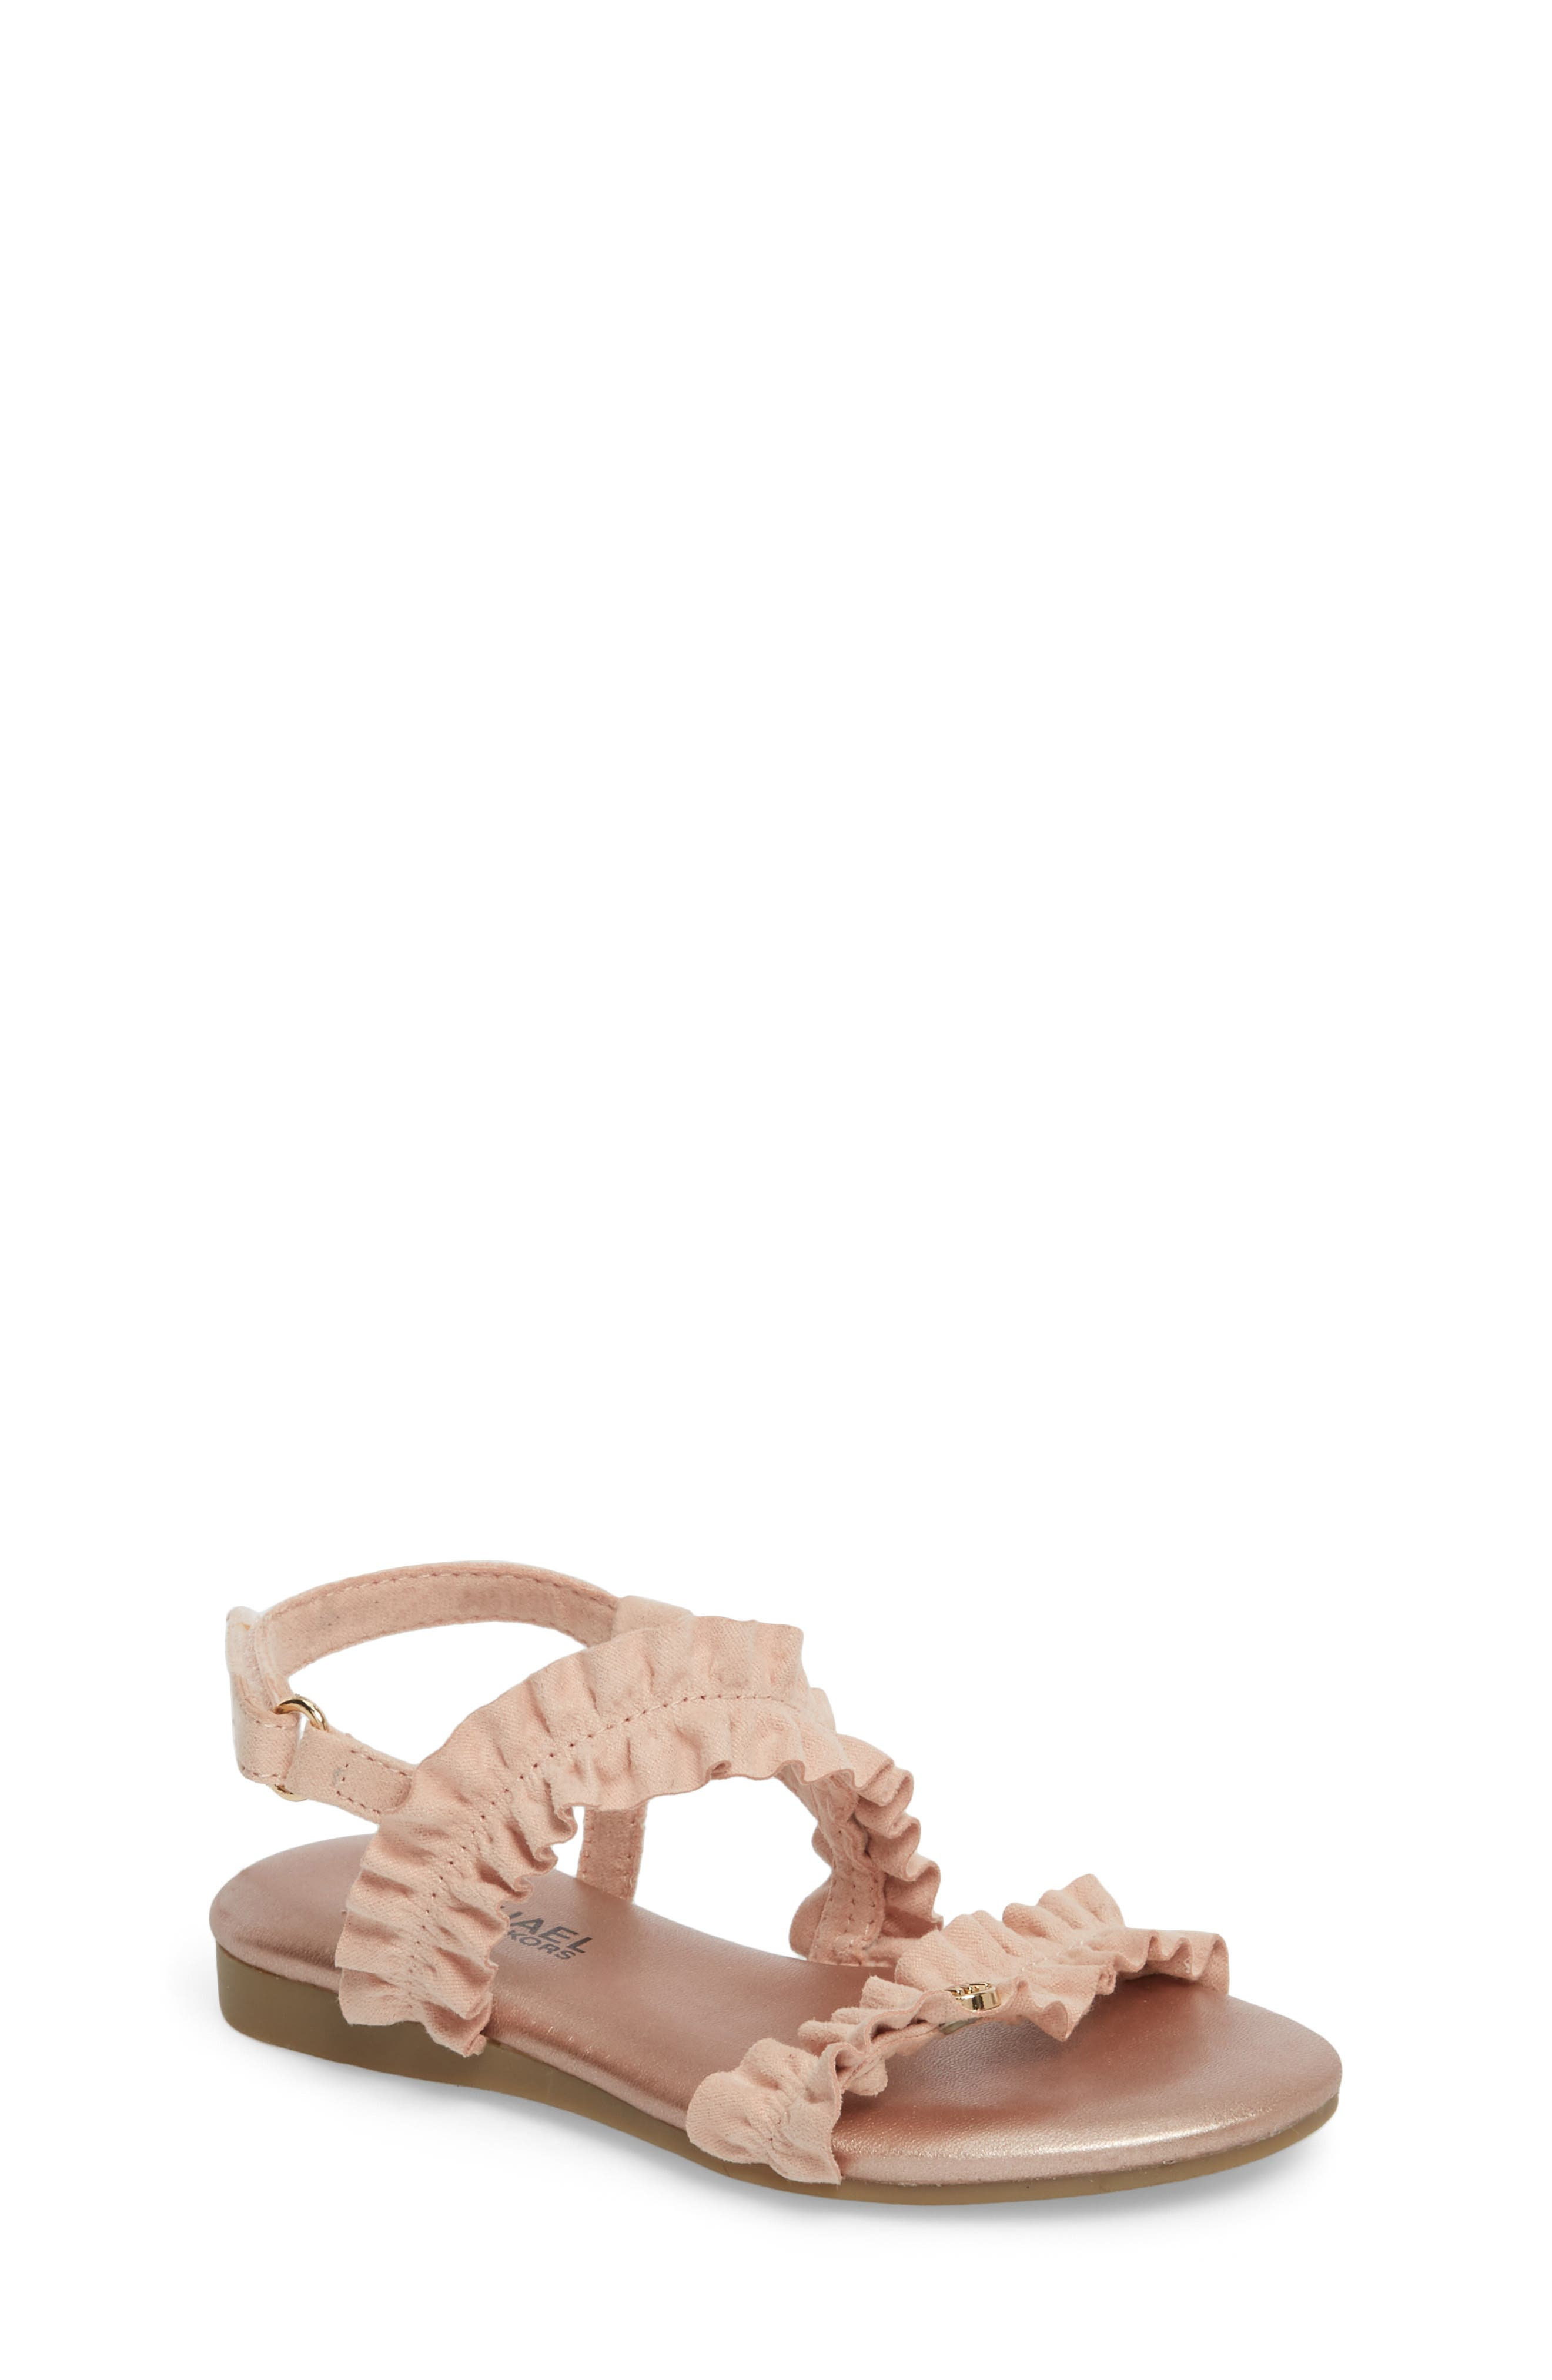 Demi Frillz Sandal,                             Main thumbnail 1, color,                             654